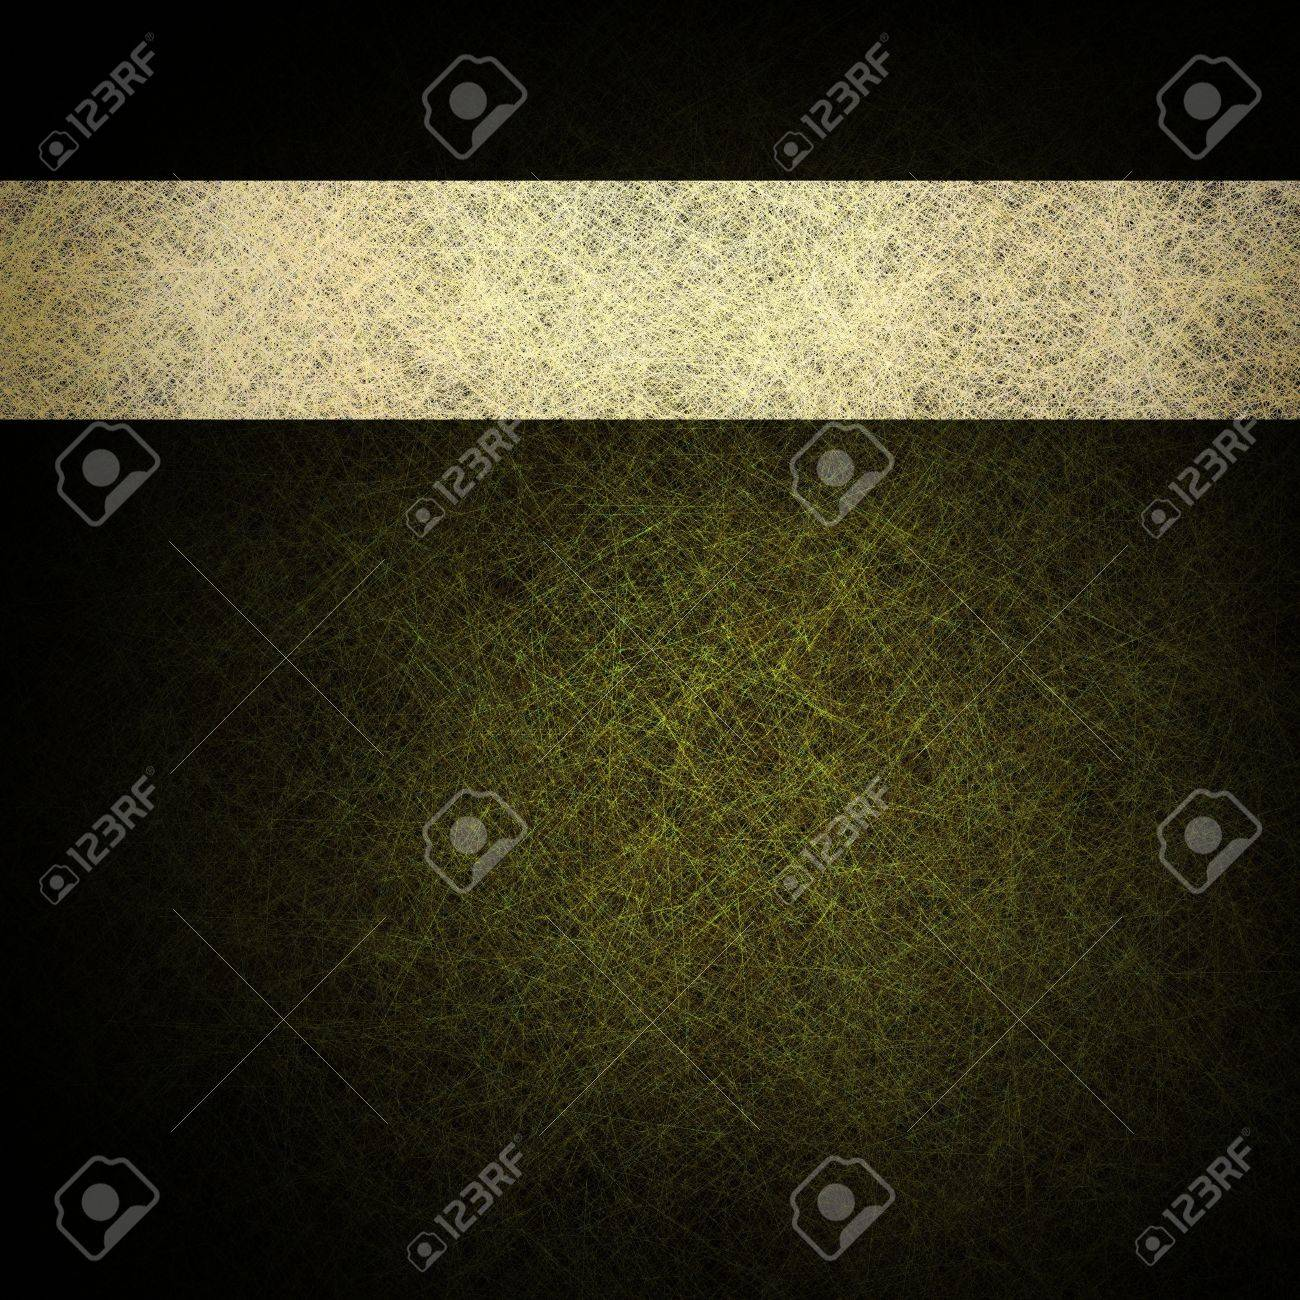 elegant green gold background with dark black edges and classic white parchment ribbon design layout Stock Photo - 12865966